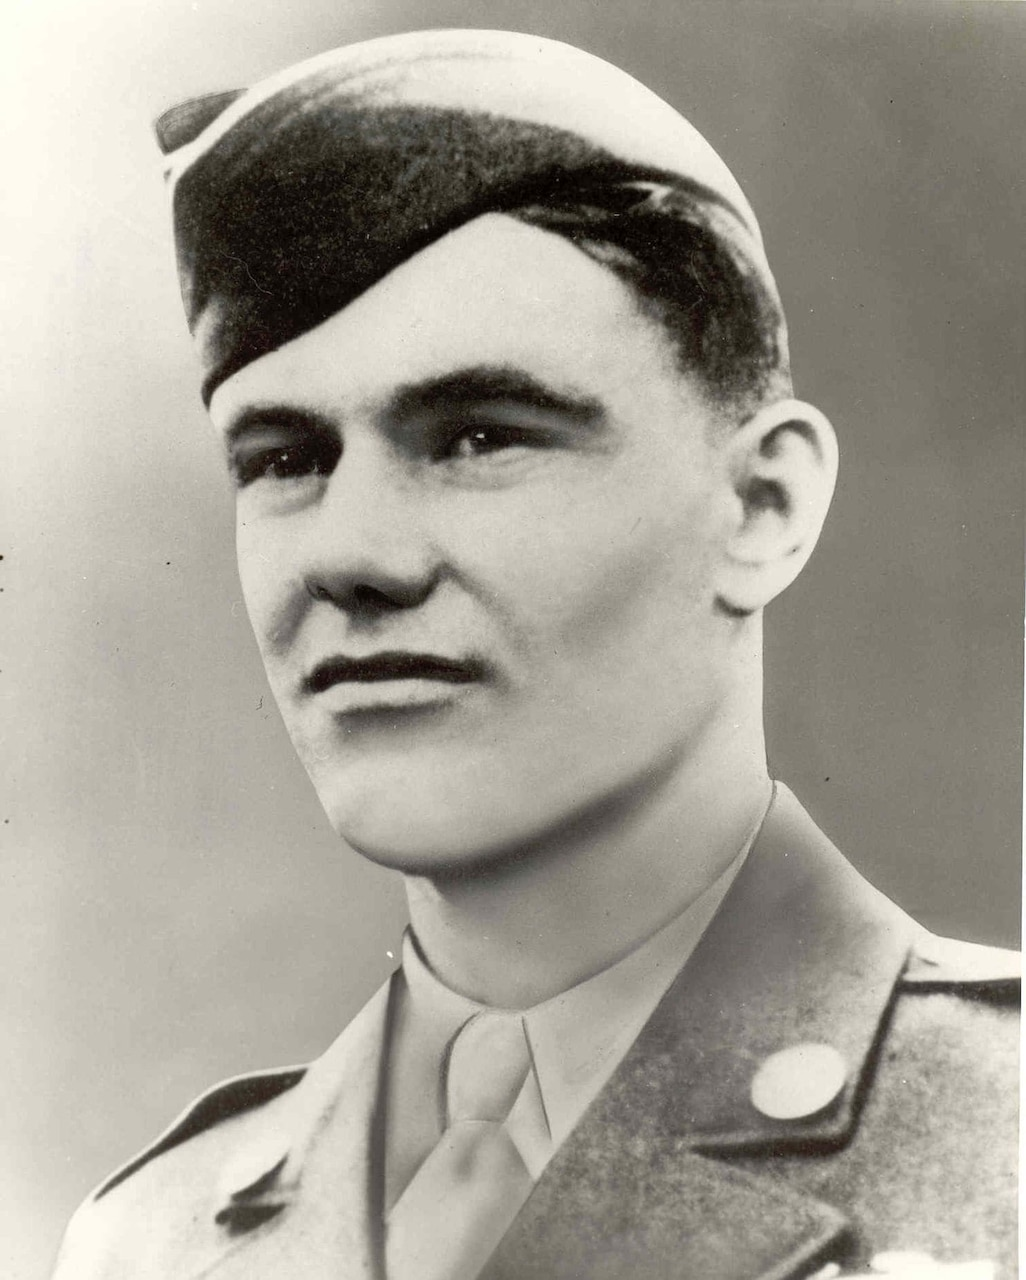 A young man wears an Army uniform and cap.